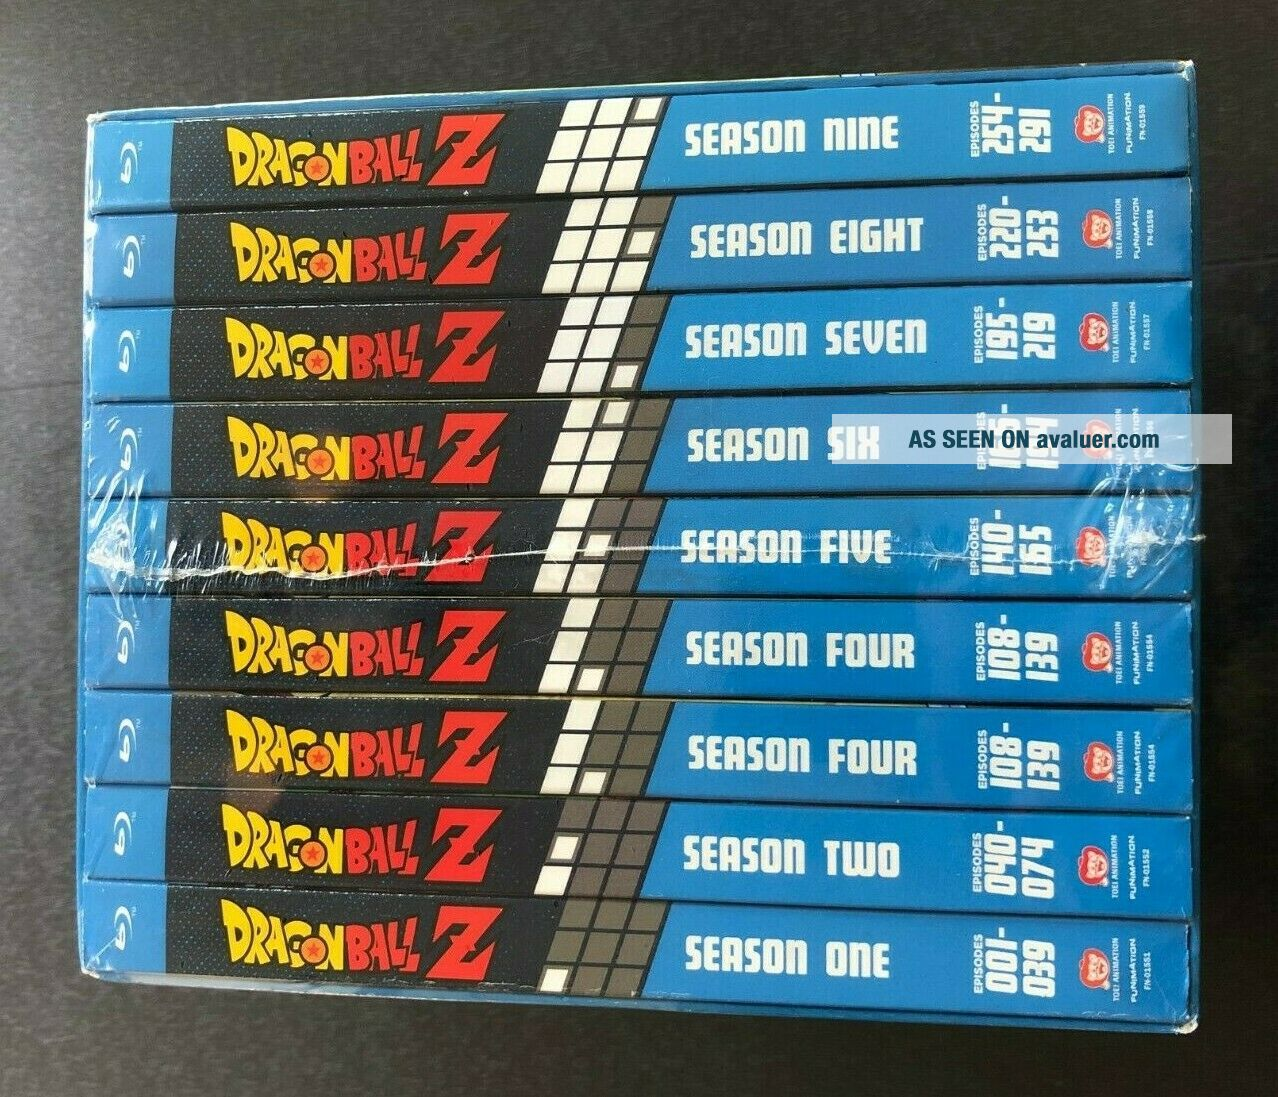 Dragon Ball Z: Seasons 1 - 9 Blu - ray Box Set COMPLETE SERIES Rare & Out of Print